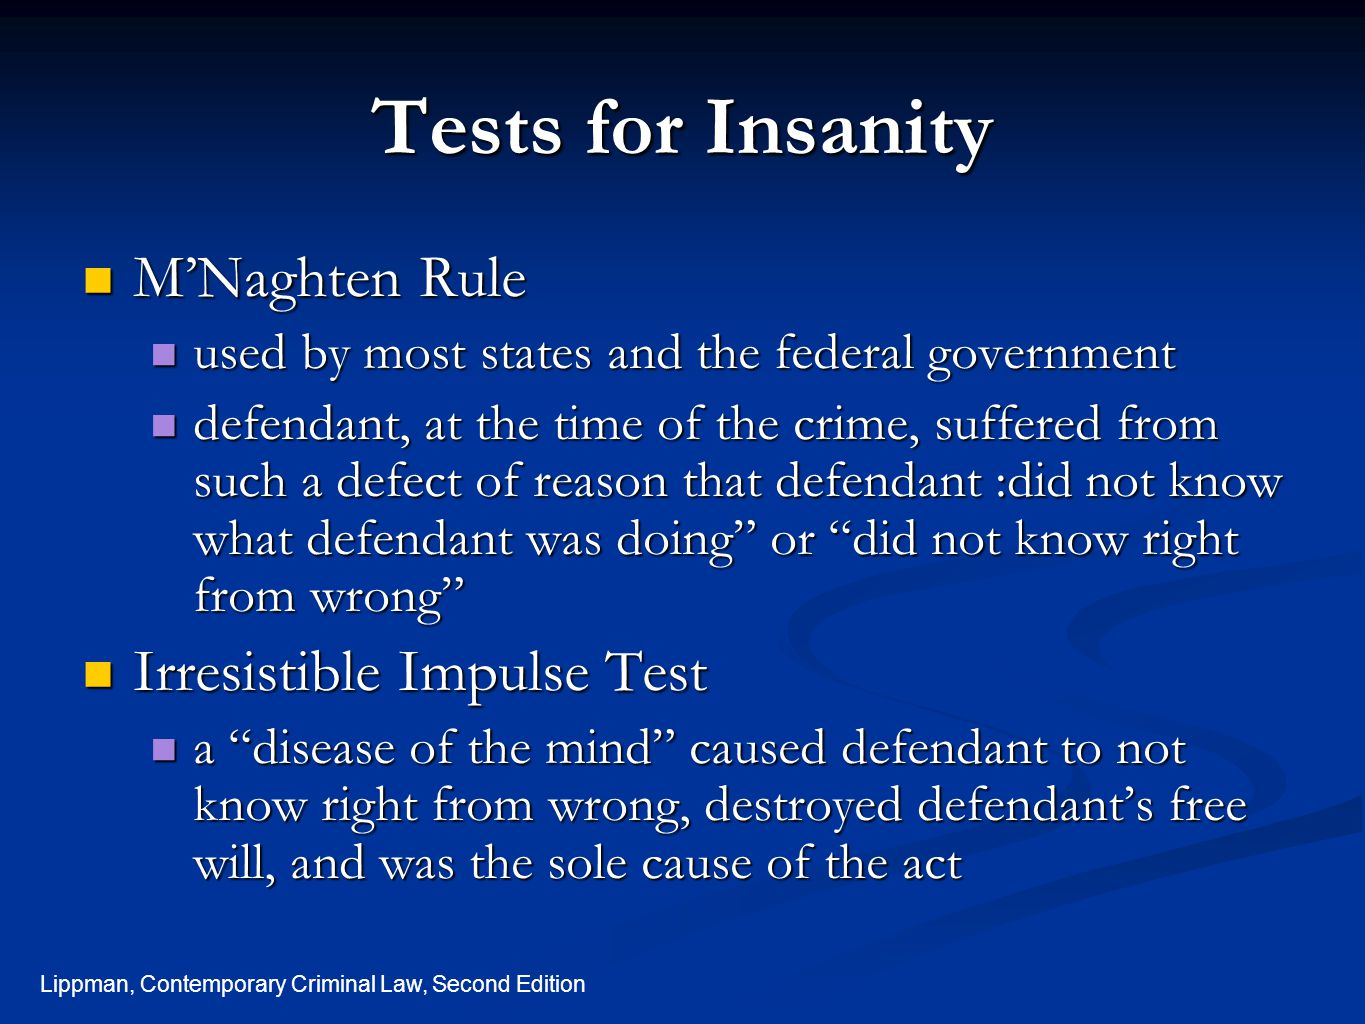 Lippman, Contemporary Criminal Law, Second Edition Tests for Insanity M'Naghten Rule M'Naghten Rule used by most states and the federal government used by most states and the federal government defendant, at the time of the crime, suffered from such a defect of reason that defendant :did not know what defendant was doing or did not know right from wrong defendant, at the time of the crime, suffered from such a defect of reason that defendant :did not know what defendant was doing or did not know right from wrong Irresistible Impulse Test Irresistible Impulse Test a disease of the mind caused defendant to not know right from wrong, destroyed defendant's free will, and was the sole cause of the act a disease of the mind caused defendant to not know right from wrong, destroyed defendant's free will, and was the sole cause of the act